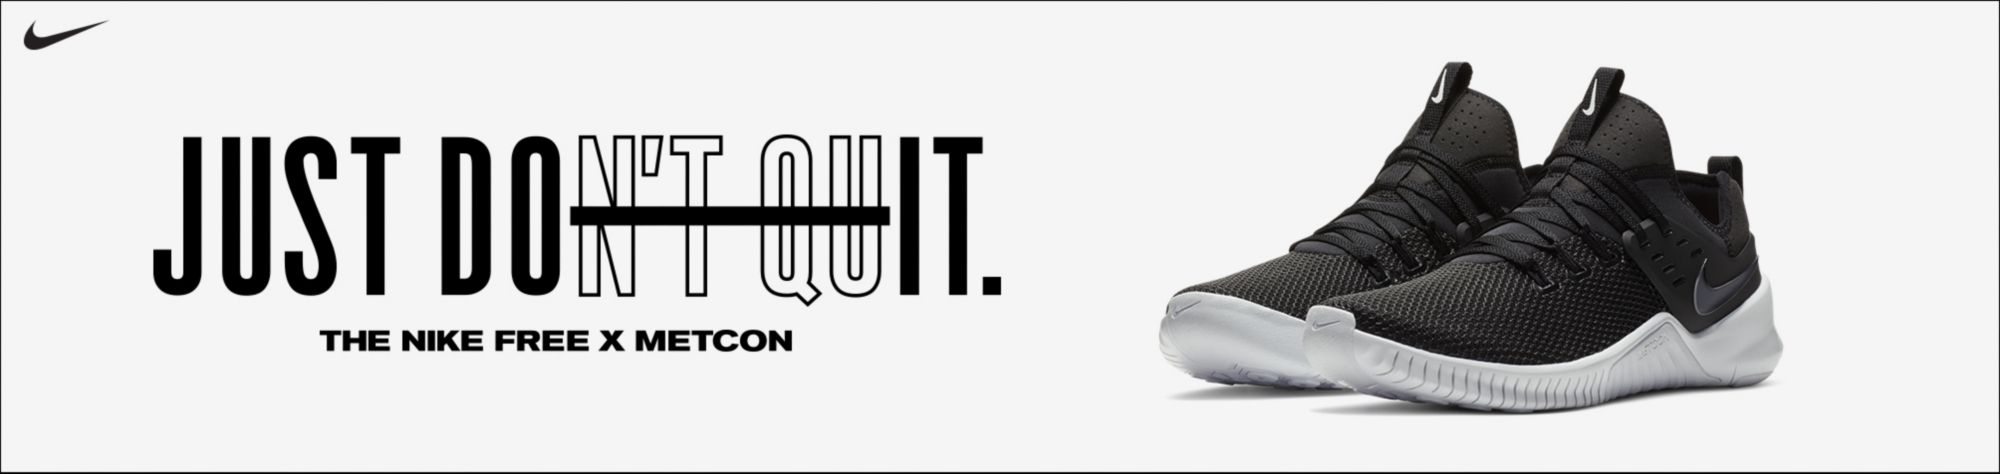 Just Don't Quit - The Nike Free X Metcon - Shop Now